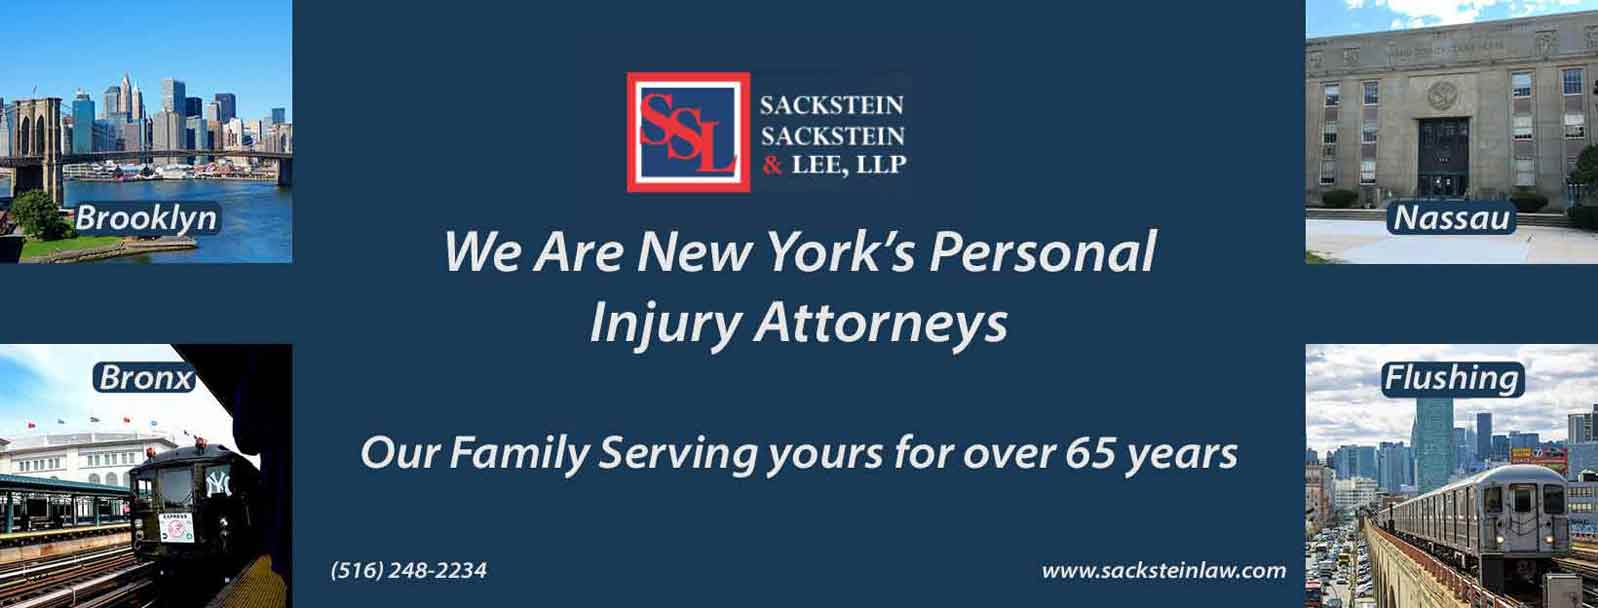 Sackstein Sackstein & Lee, LLP reviews | Lawyers at 154-08 Northern Blvd. - Flushing NY